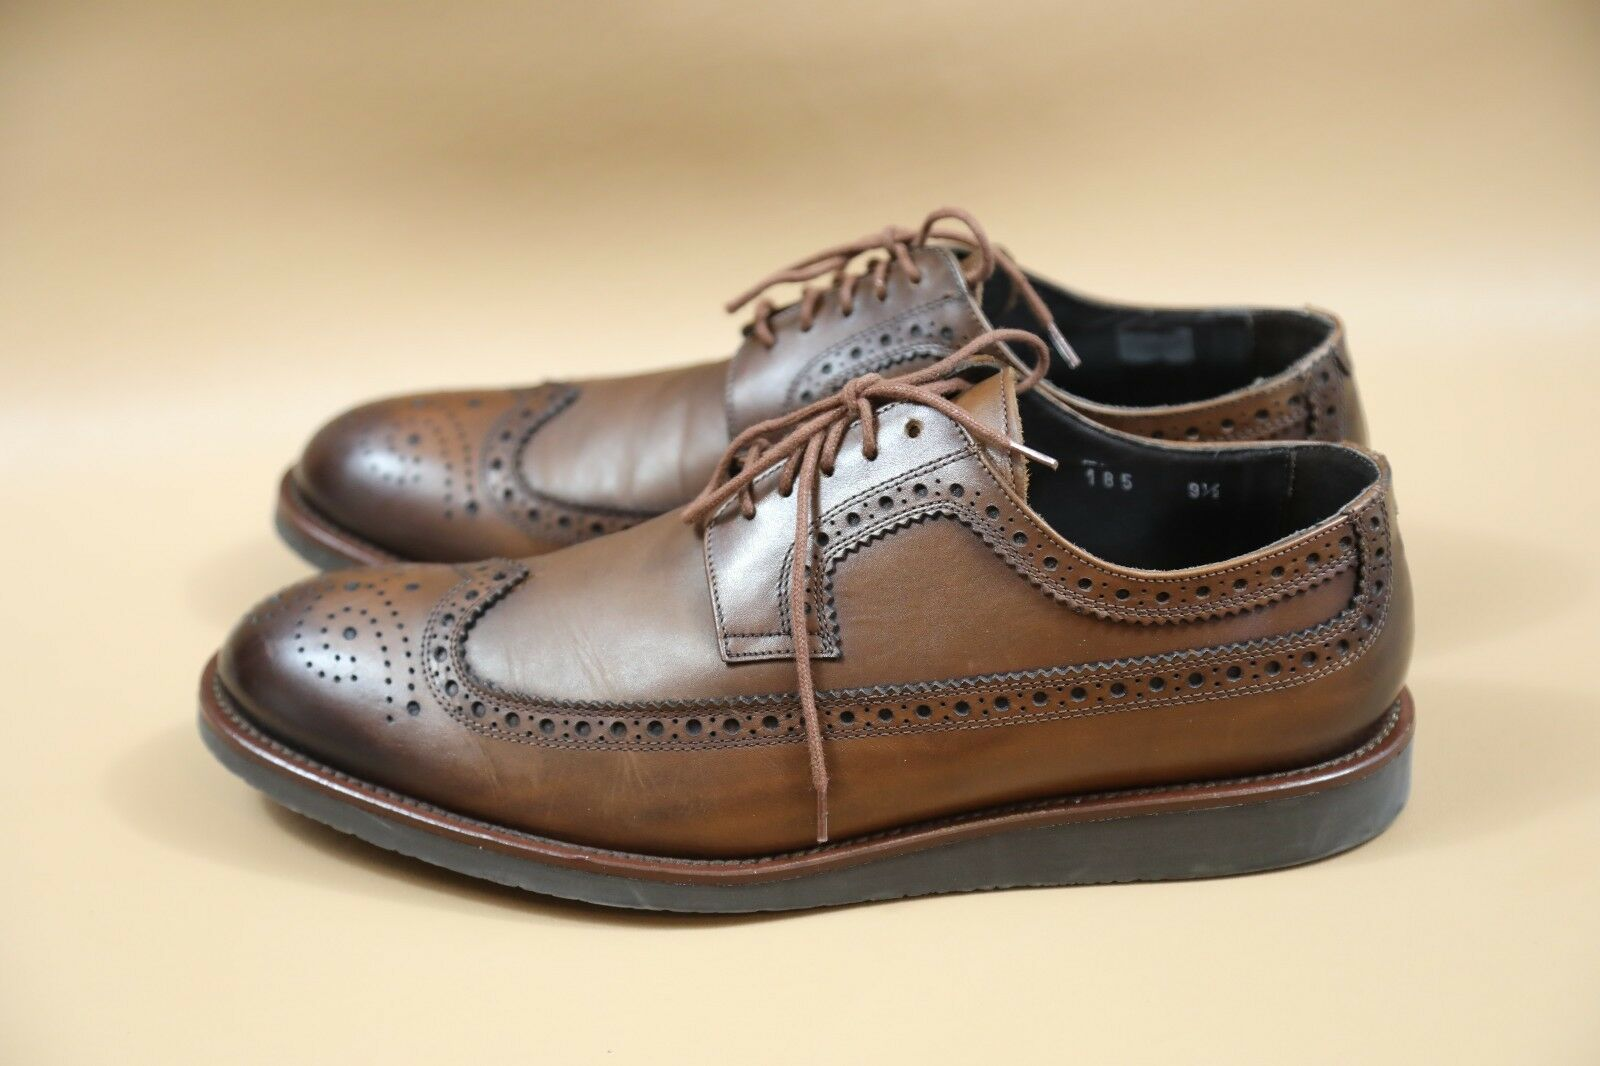 534a164c18af ... To To To Boot New York Brown Wing Tip Oxfords Shoes Size 9.5 M d7a46c  ...